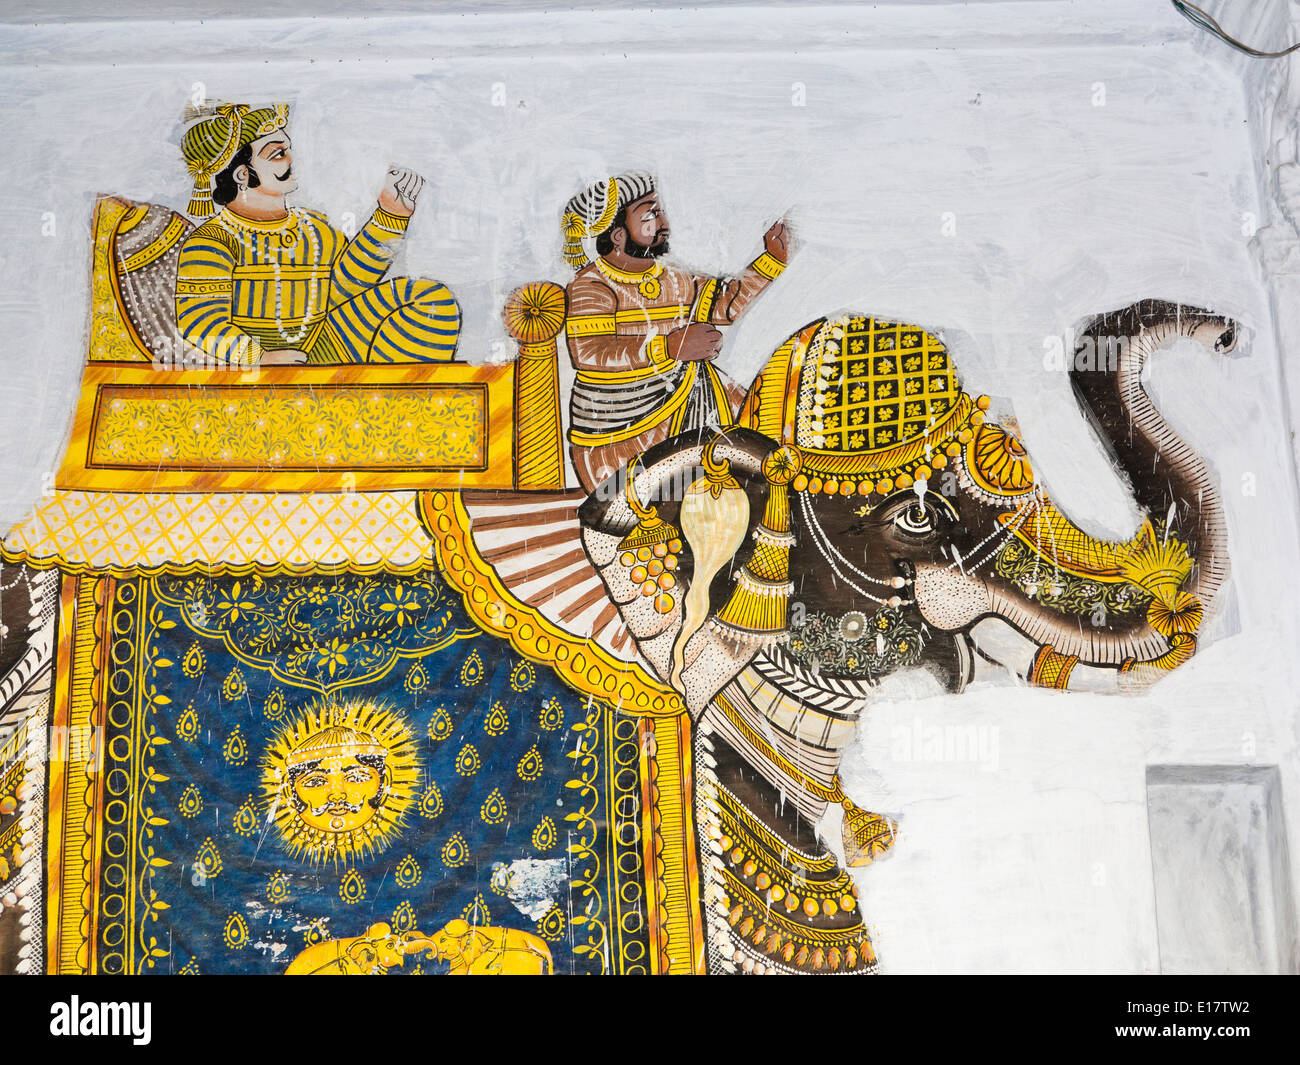 Rajasthani Painting Stock Photos & Rajasthani Painting Stock Images ...